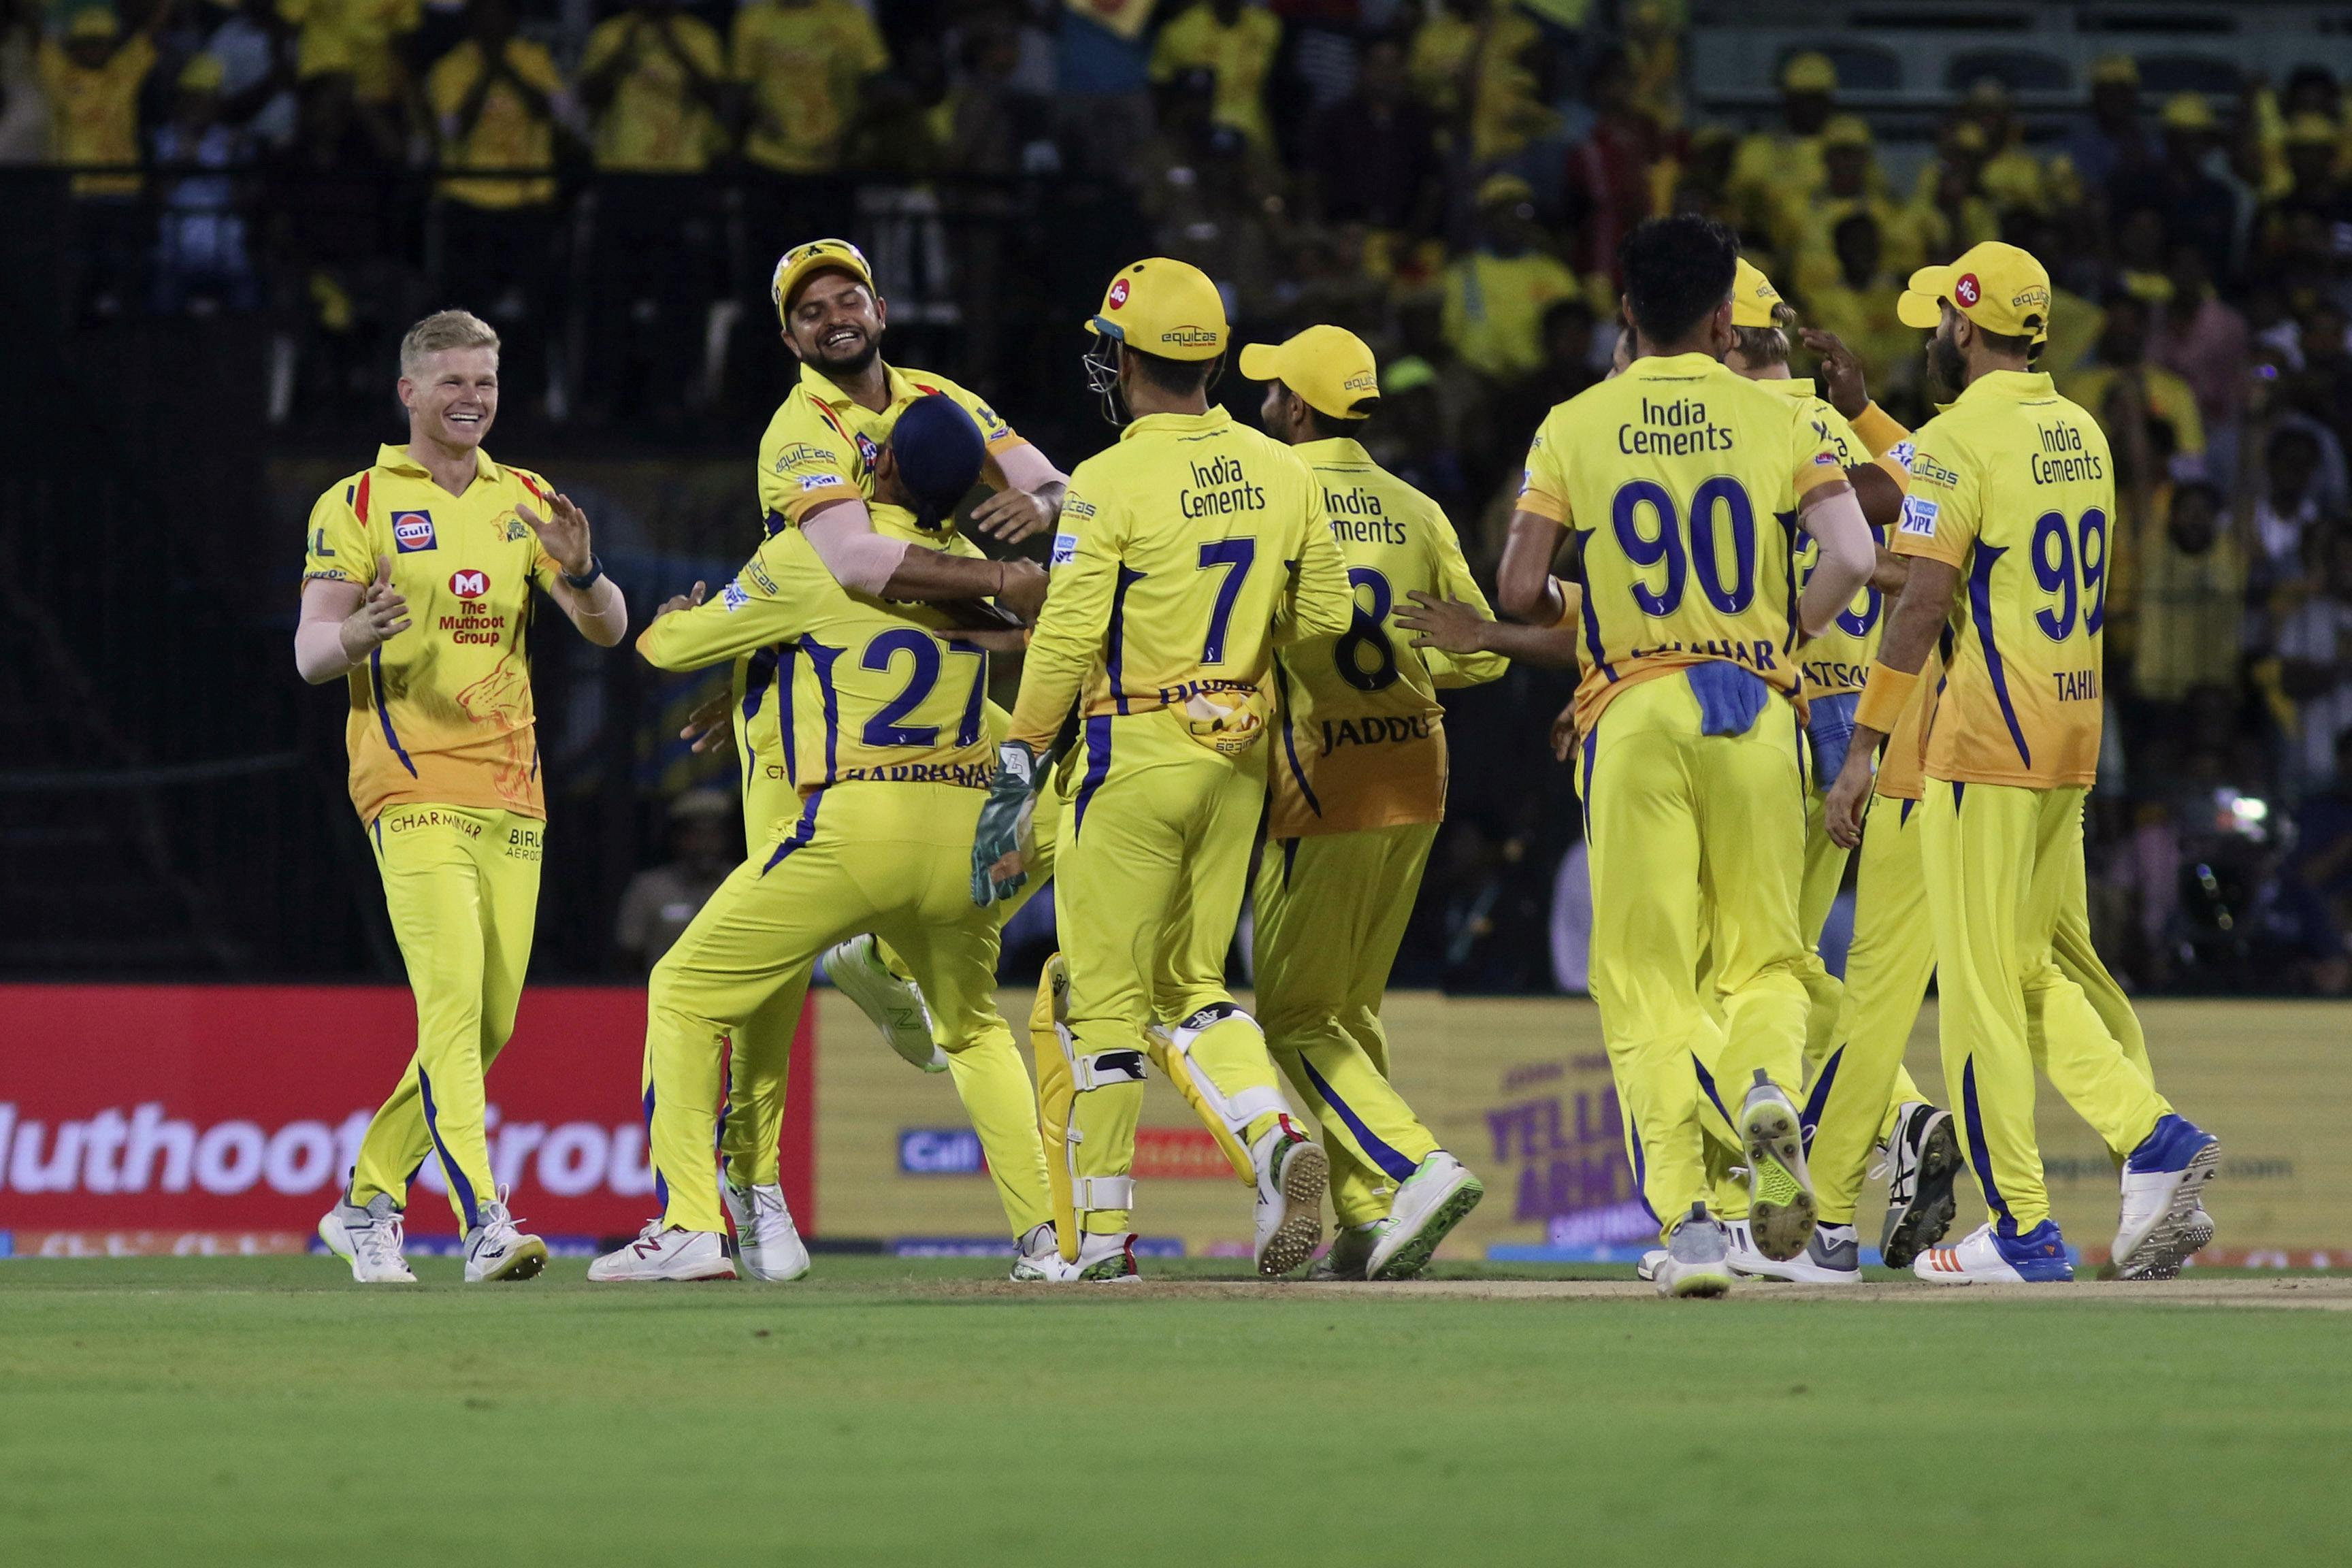 Chennai Super Kings take on Mumbai Indians as they look to secure their semi-final place